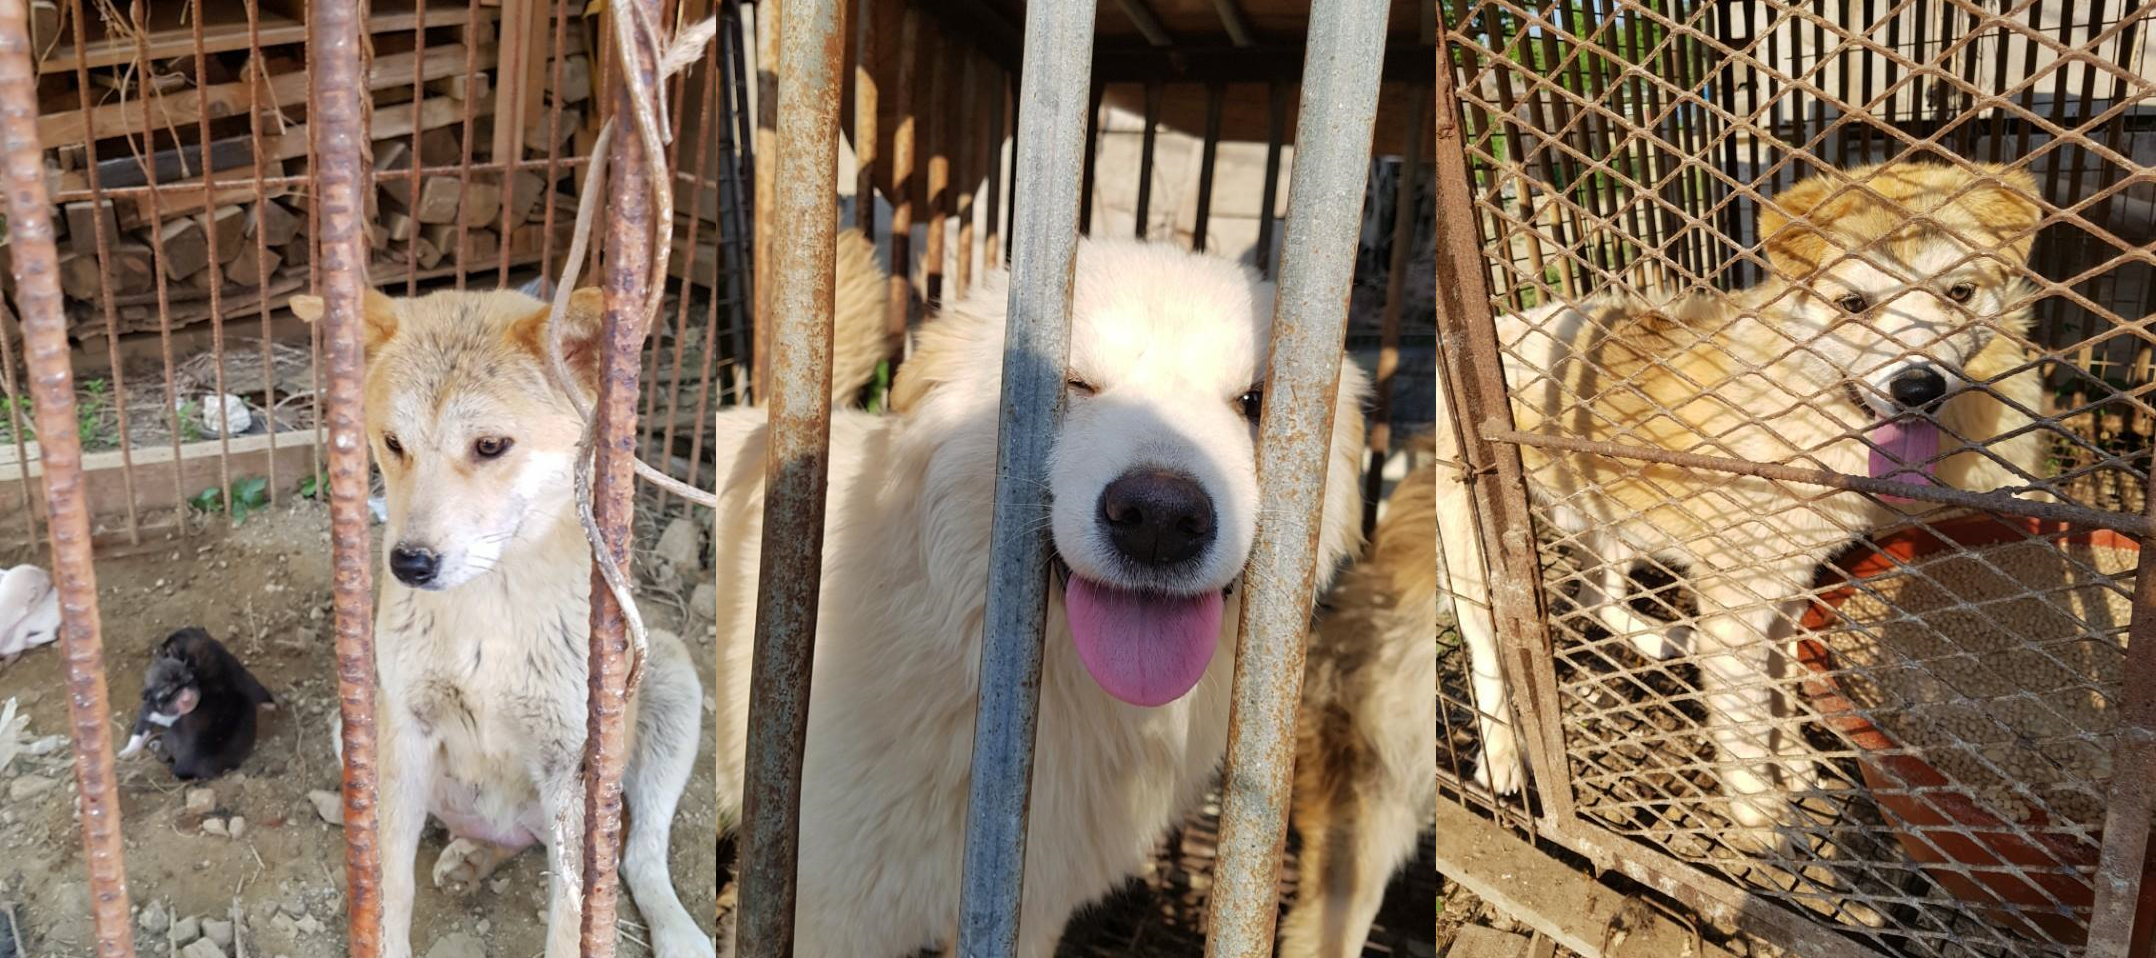 Another Rescue by Nami Kim (SaveKoreanDogs.org)